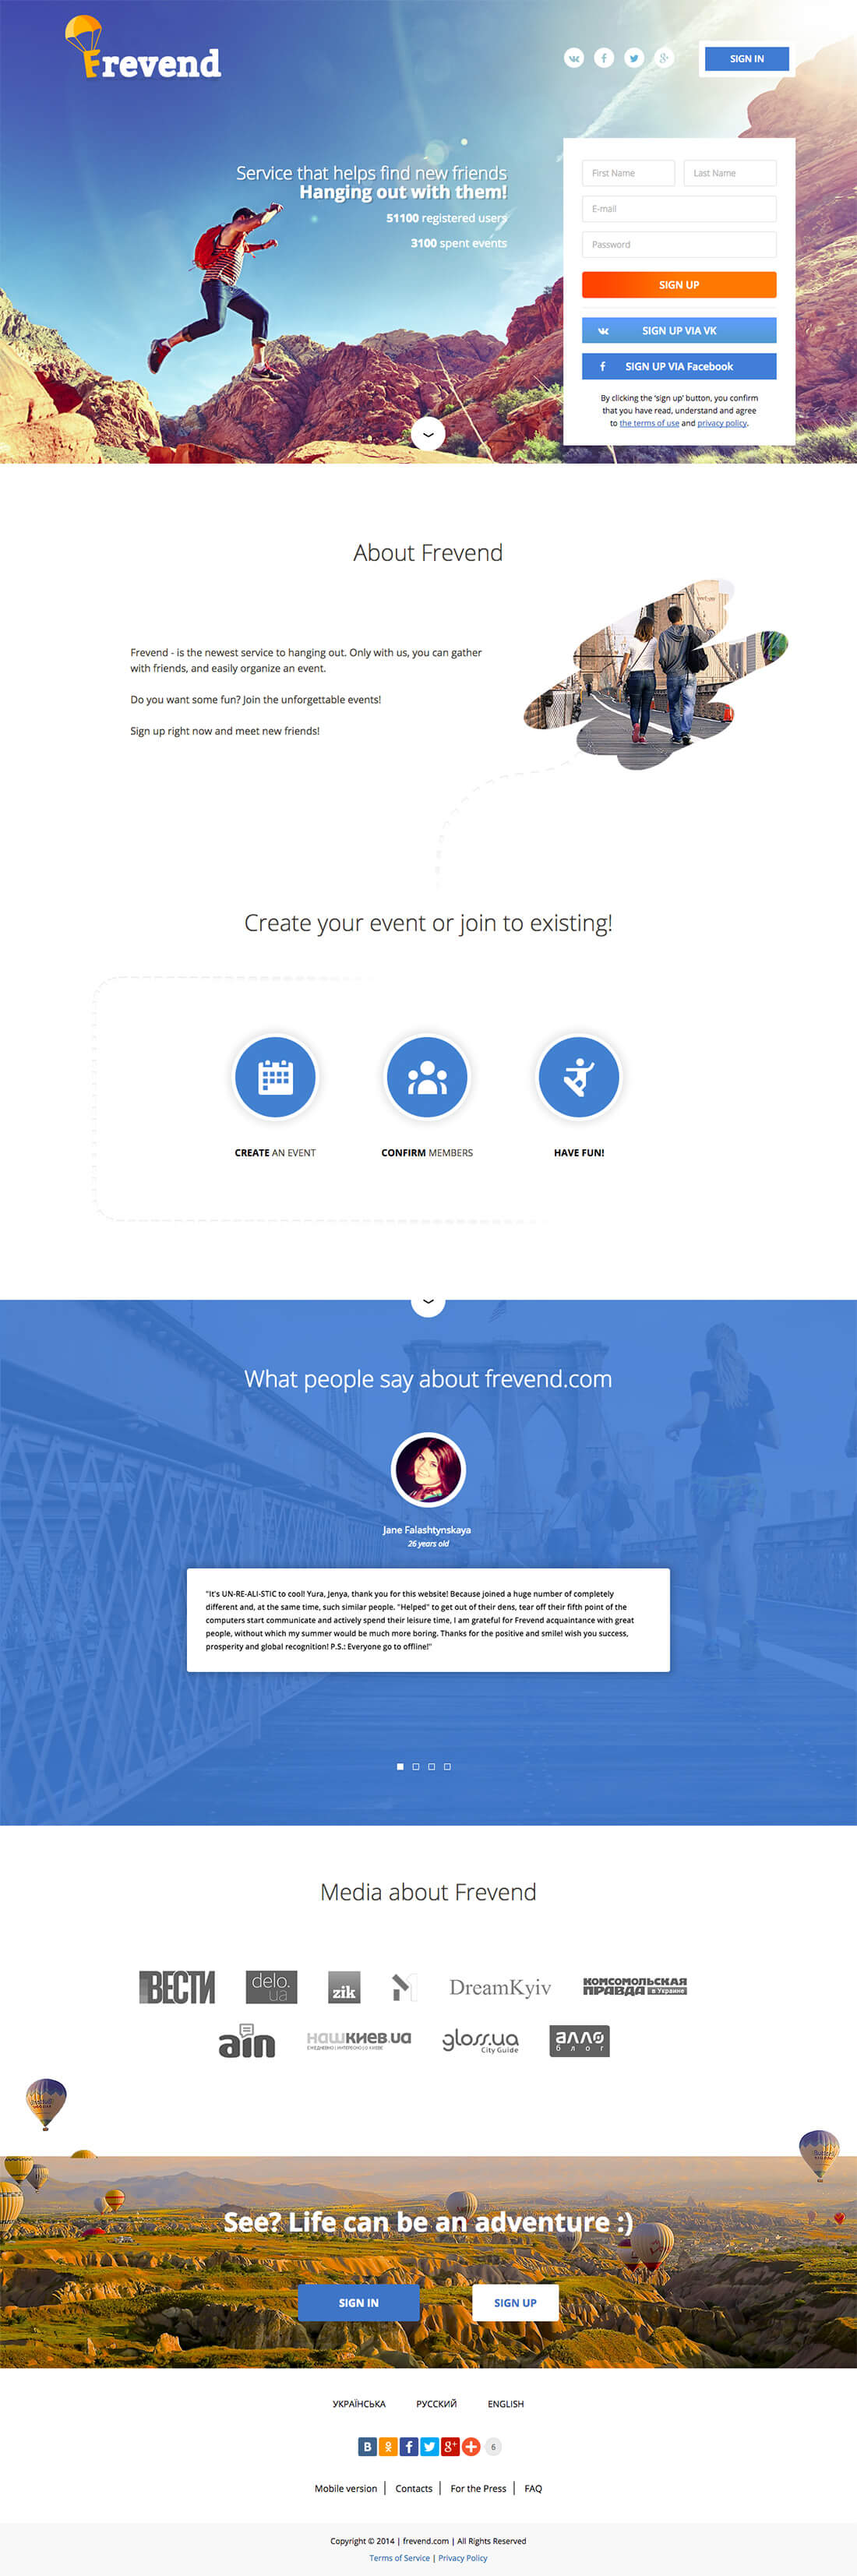 Colors in Graphic and Web Design: Blue